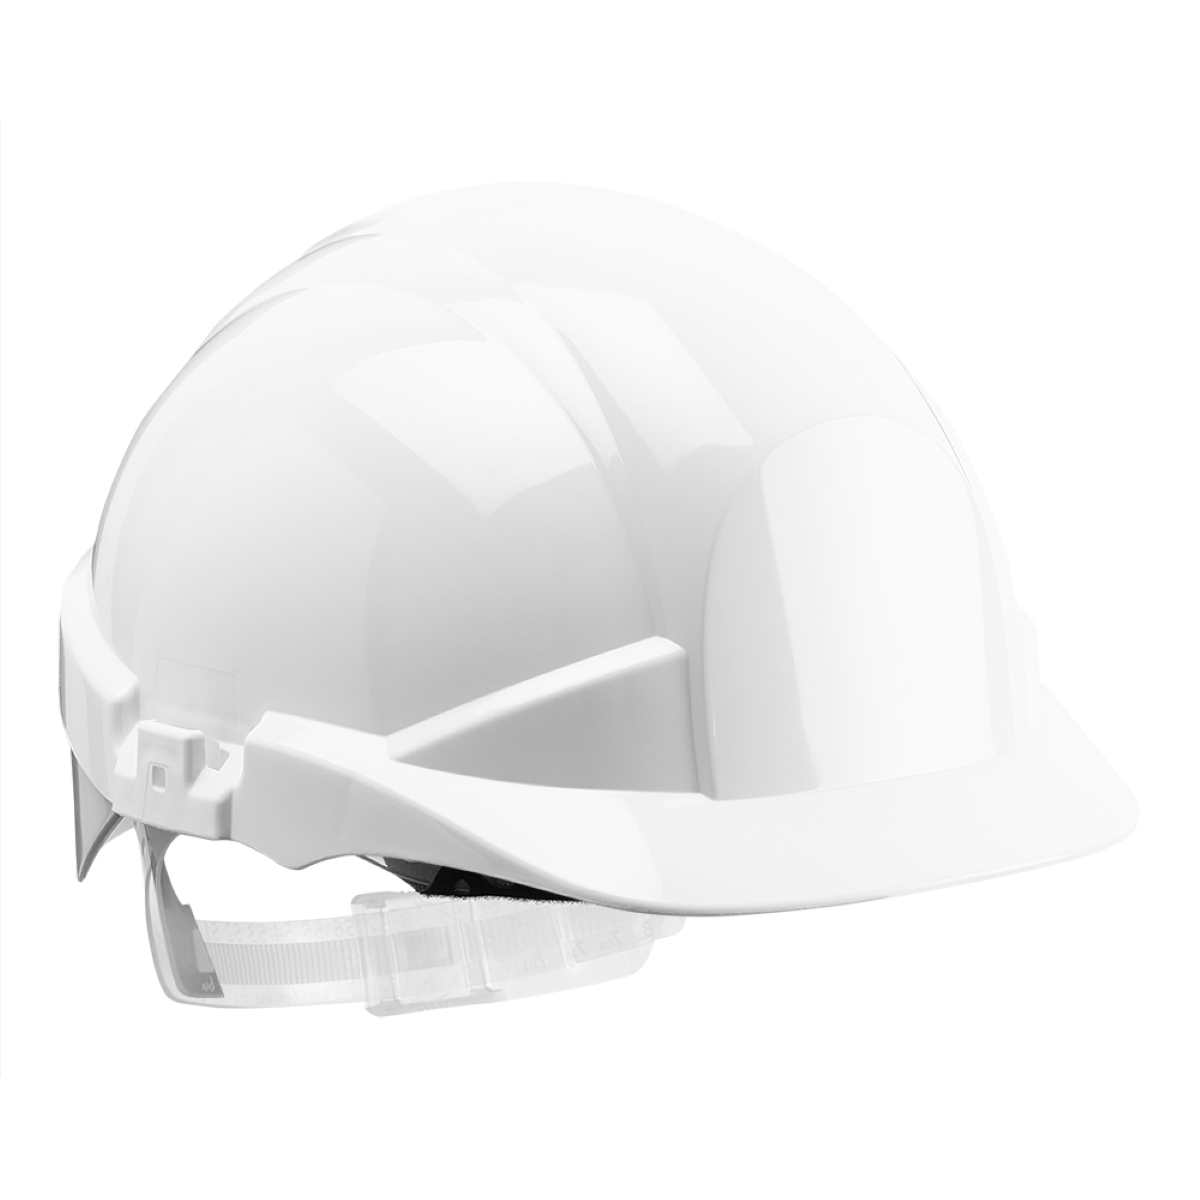 HF0120Centurion Reflex Safety Helmet with Silver Rear Flash